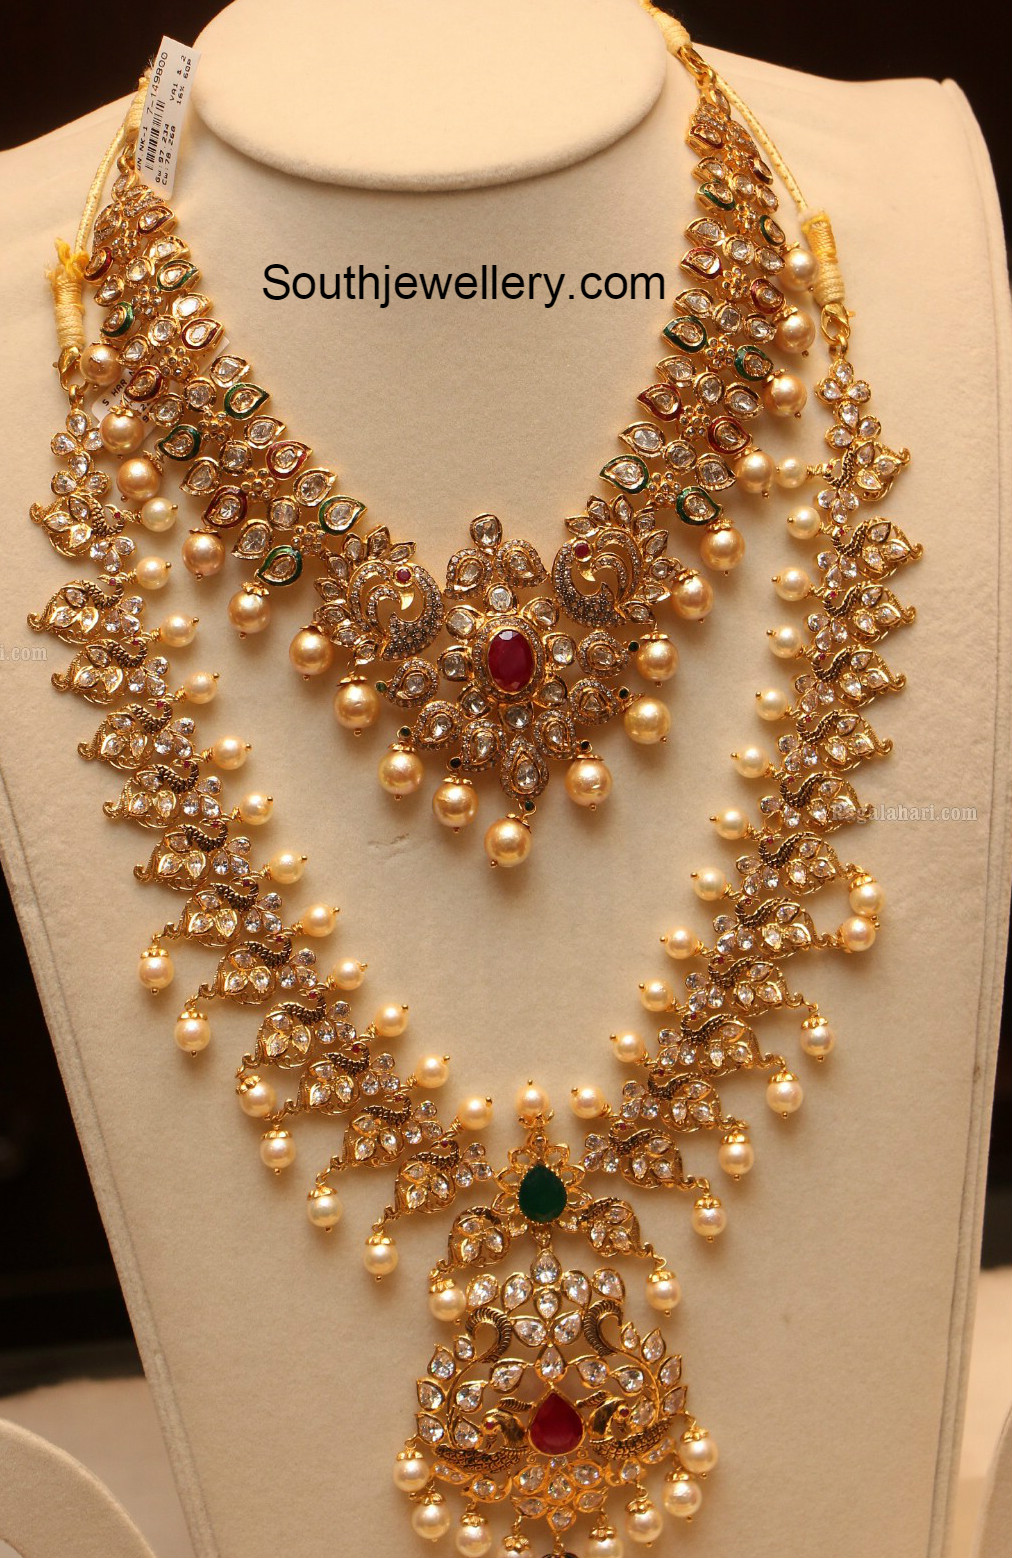 Antique Long Chain Latest Jewelry Designs Jewellery Designs